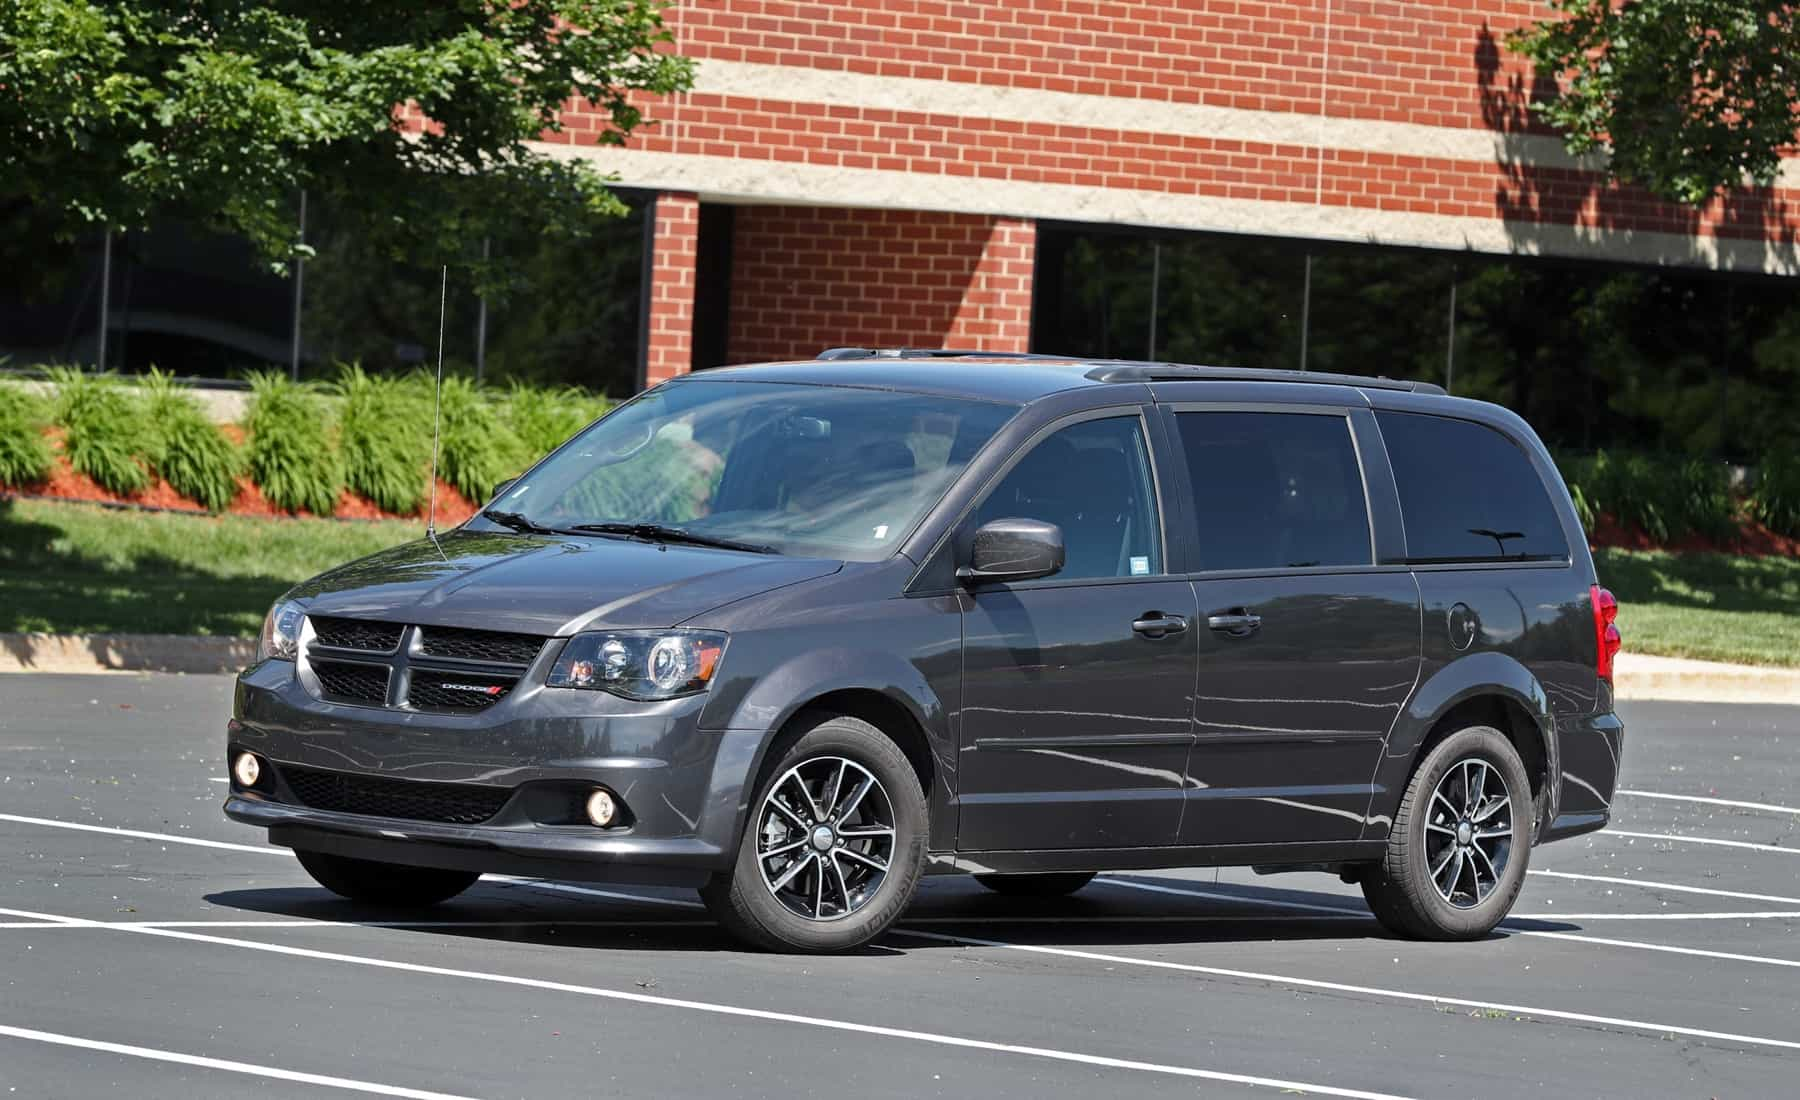 2017 Dodge Grand Caravan Exterior Grey Metallic (Photo 5 of 47)